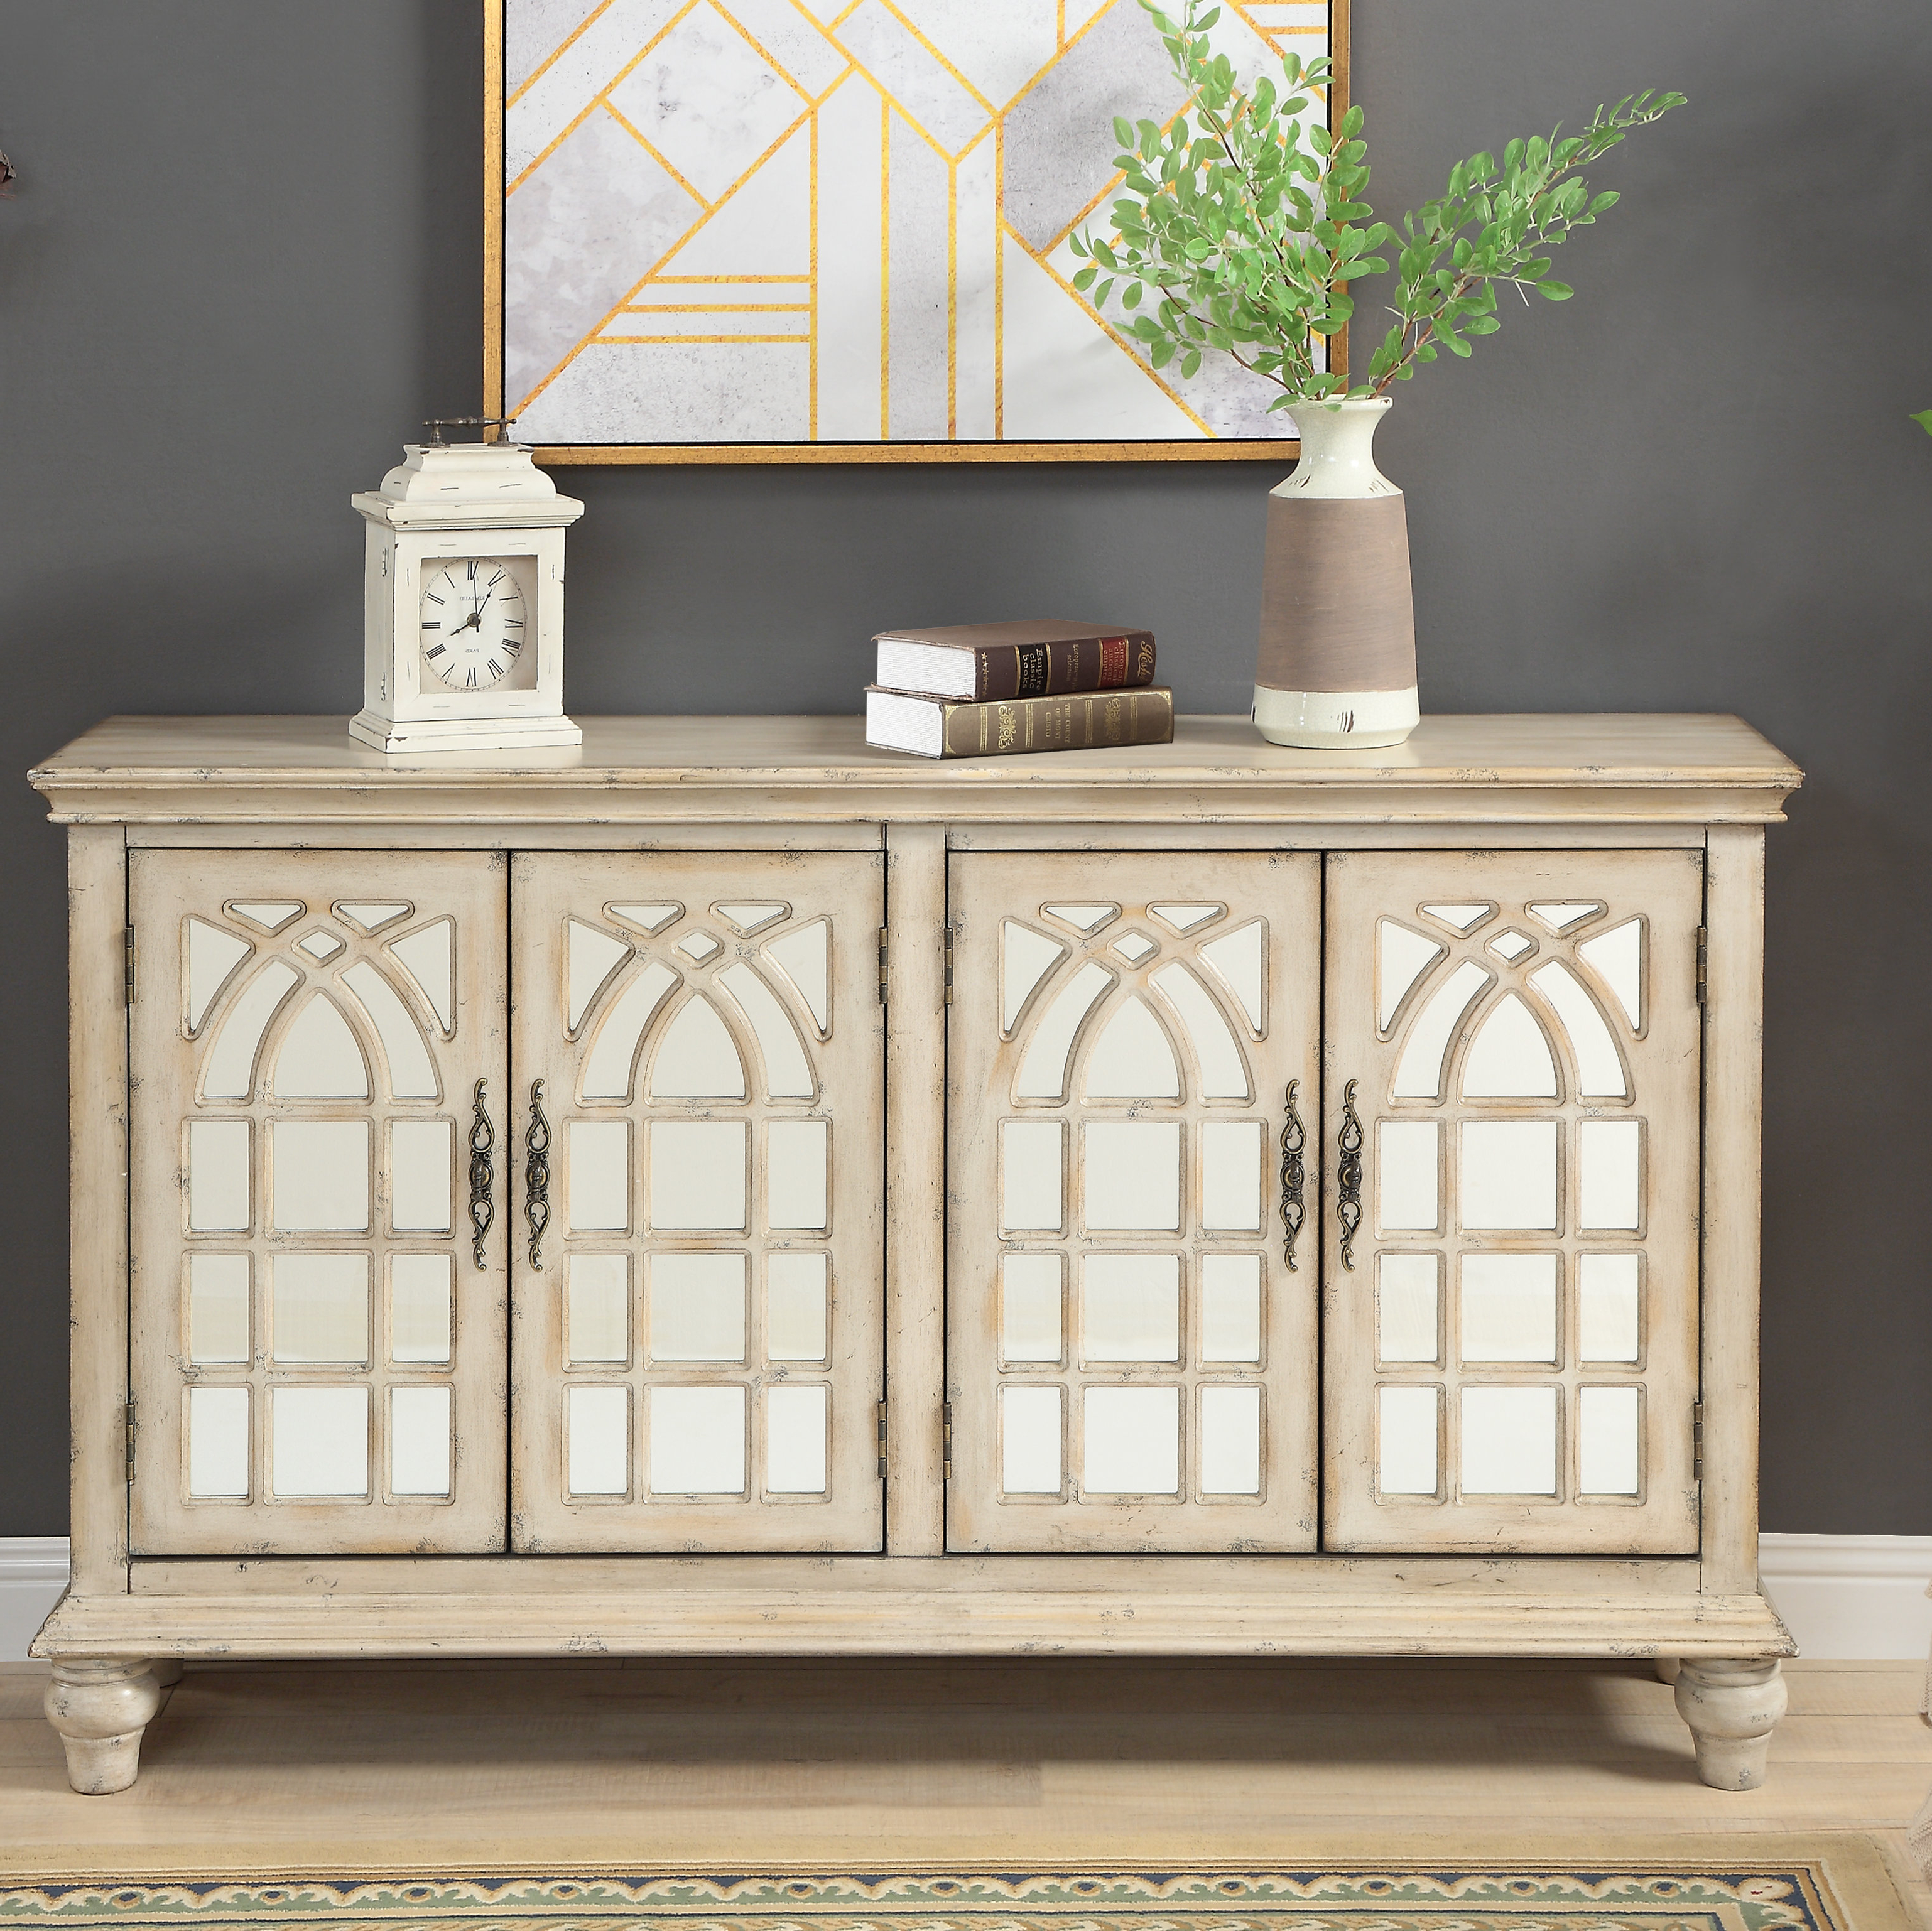 Living Room Credenza | Wayfair Pertaining To Deana Credenzas (View 11 of 20)